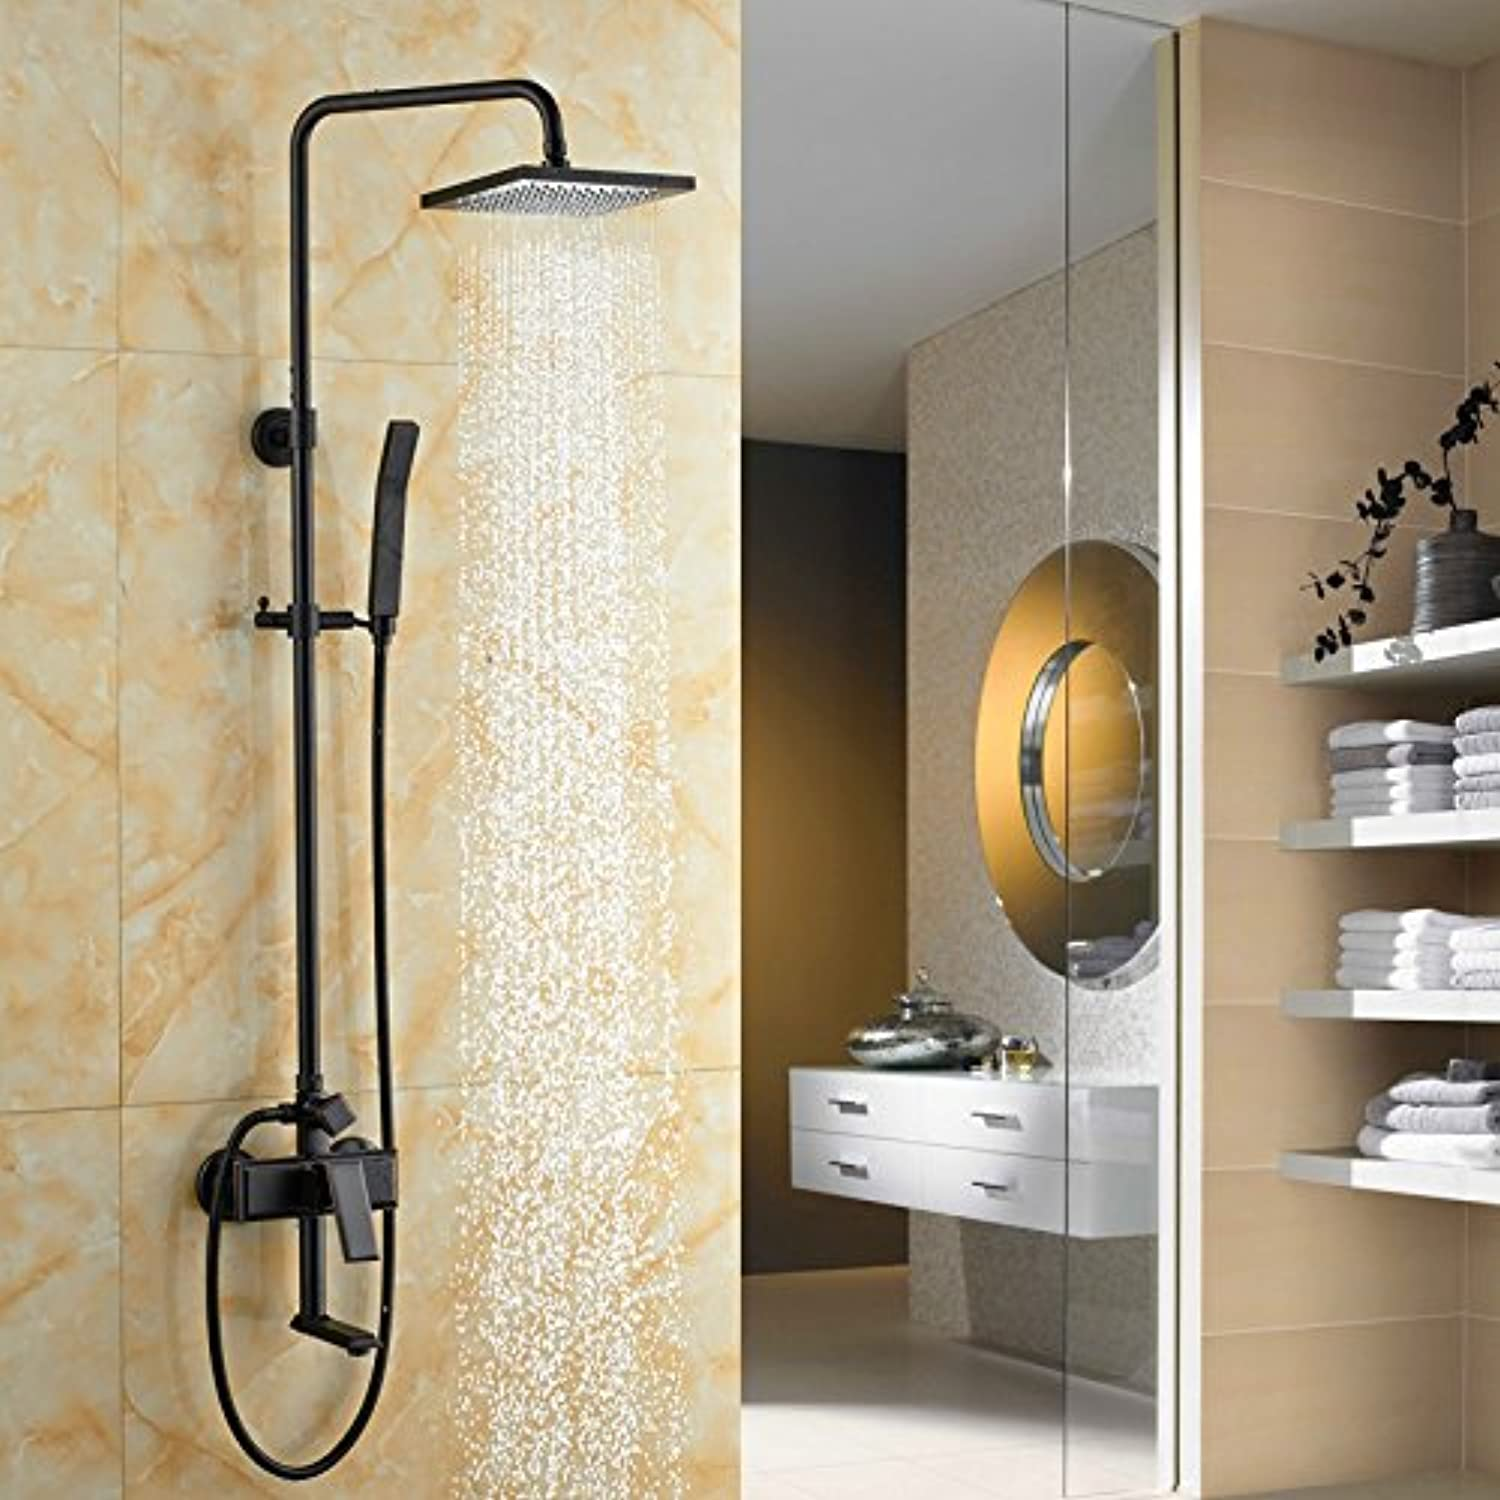 Hlluya Professional Sink Mixer Tap Kitchen Faucet The copper shower full copper shower set bathroom faucet hot and cold shower kit, Quad shower